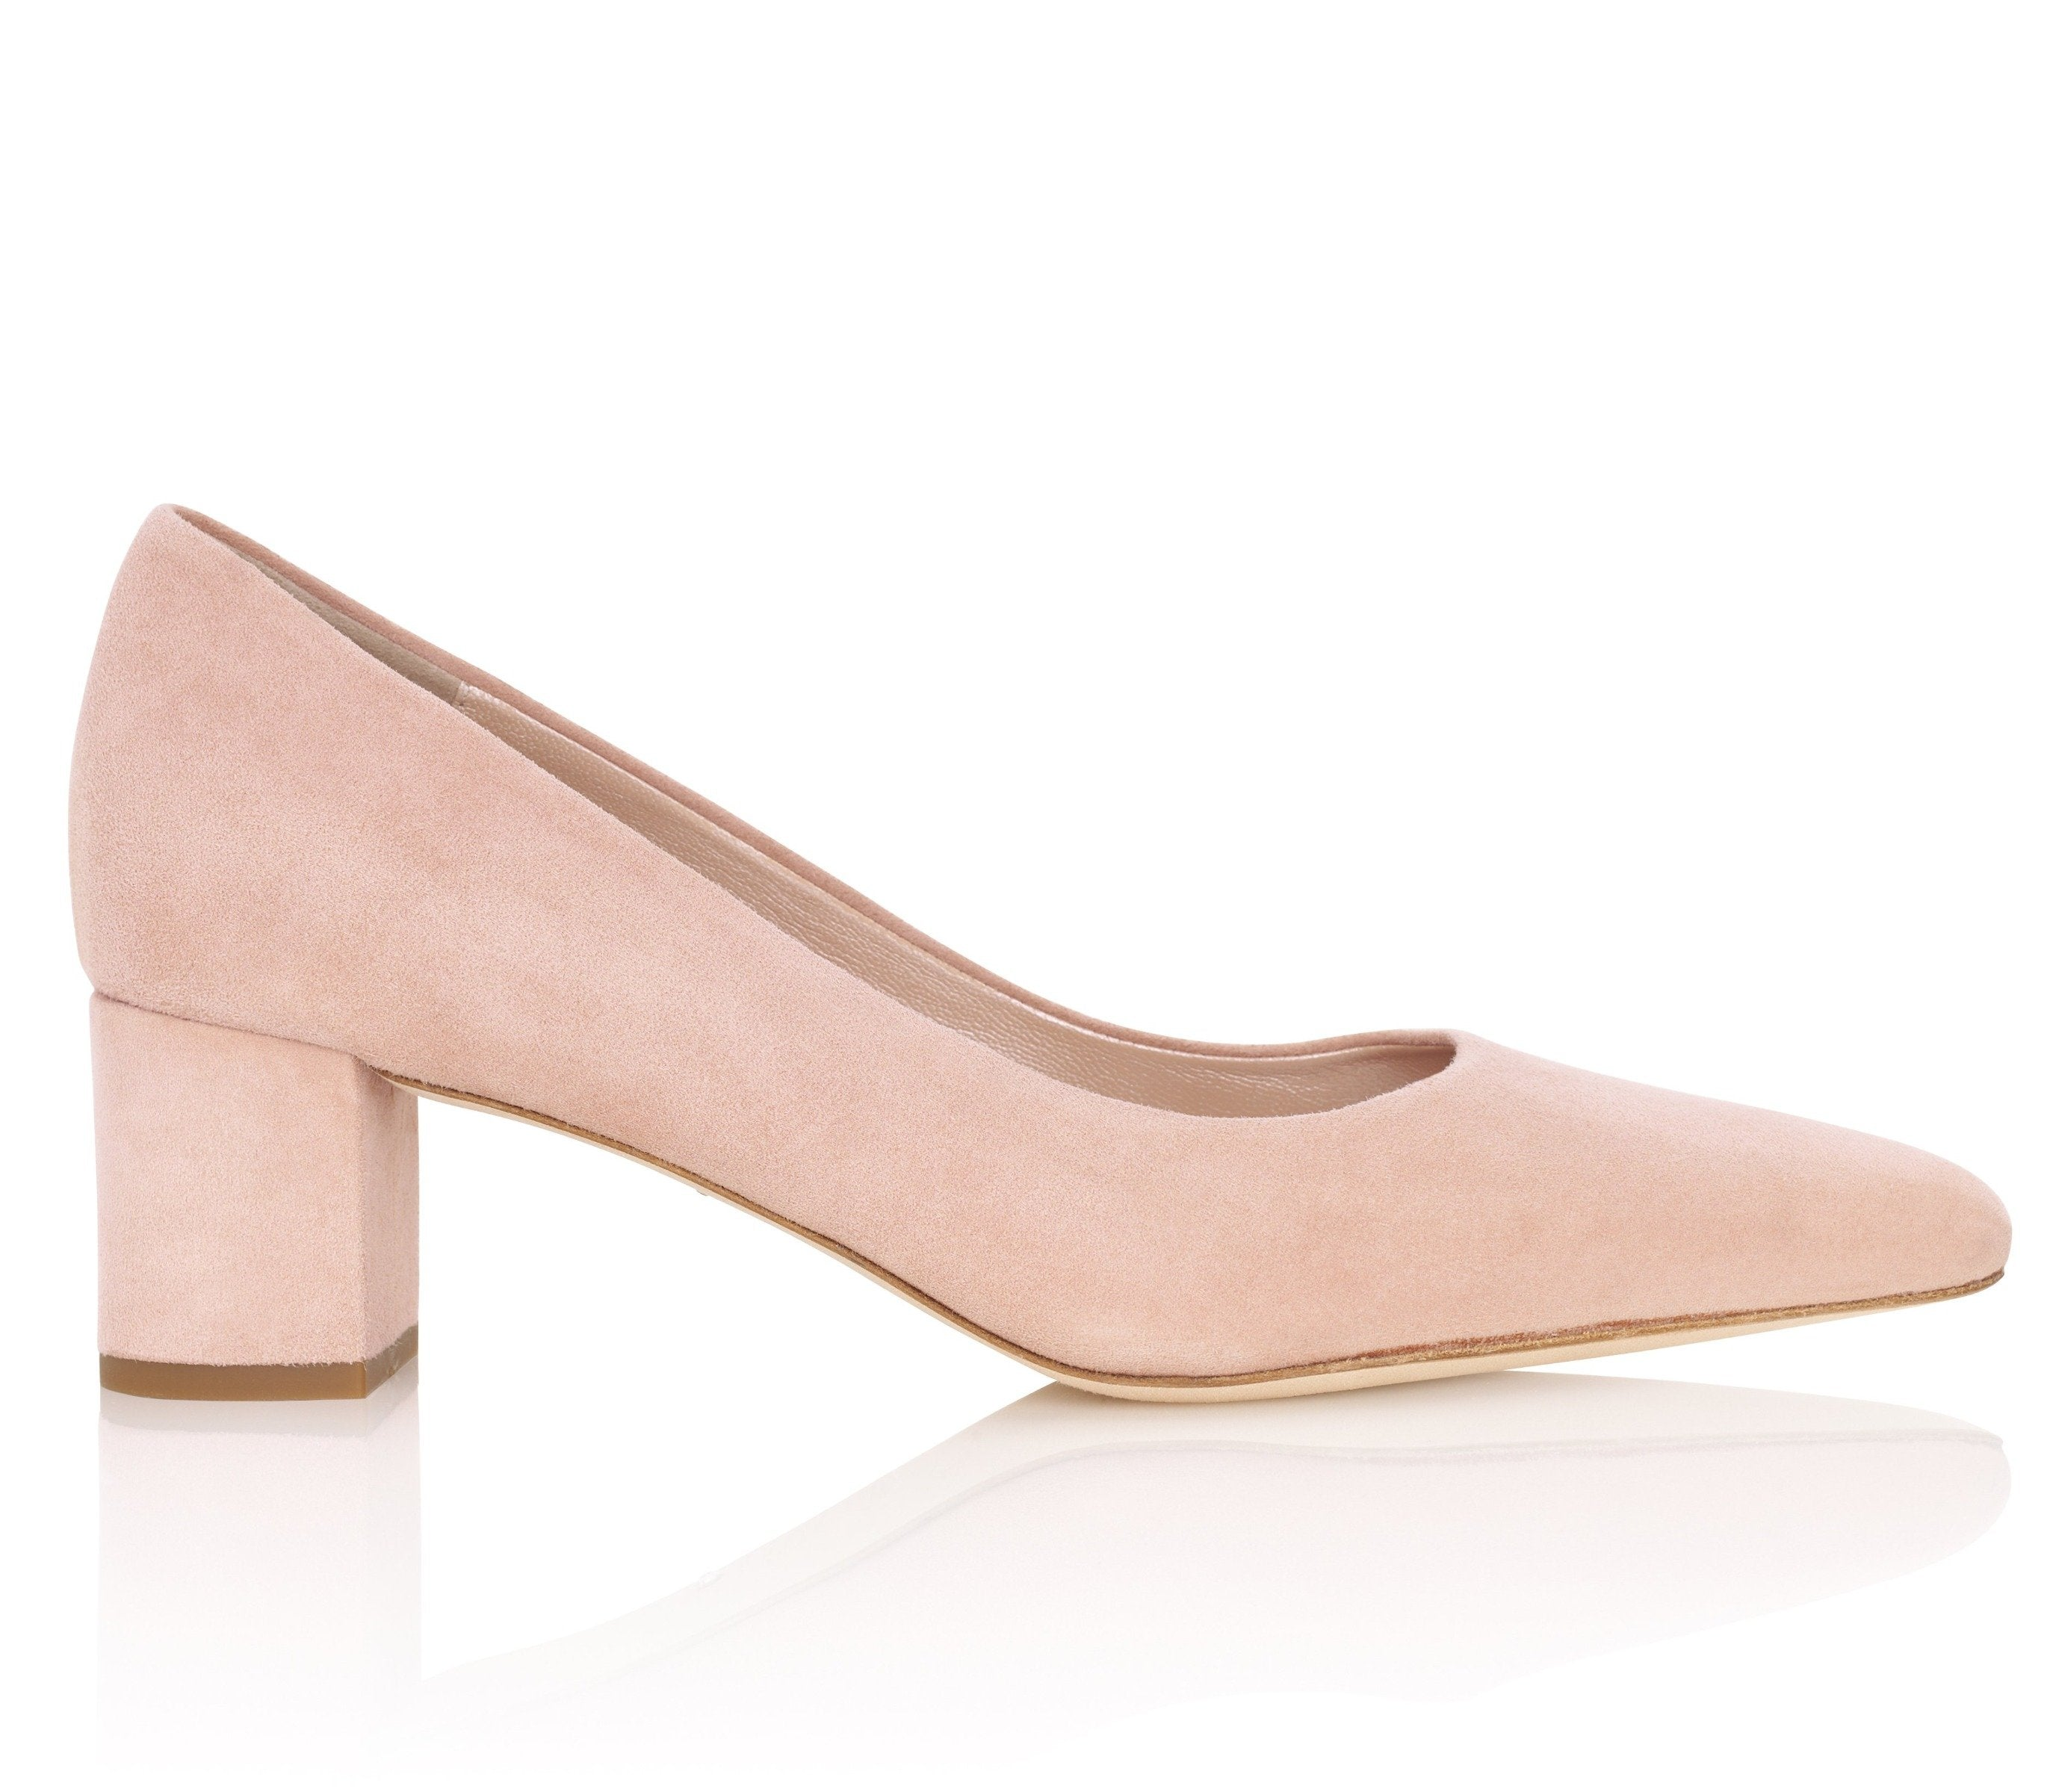 Josie Kitten Misty Rose Suede Luxury Court Shoes